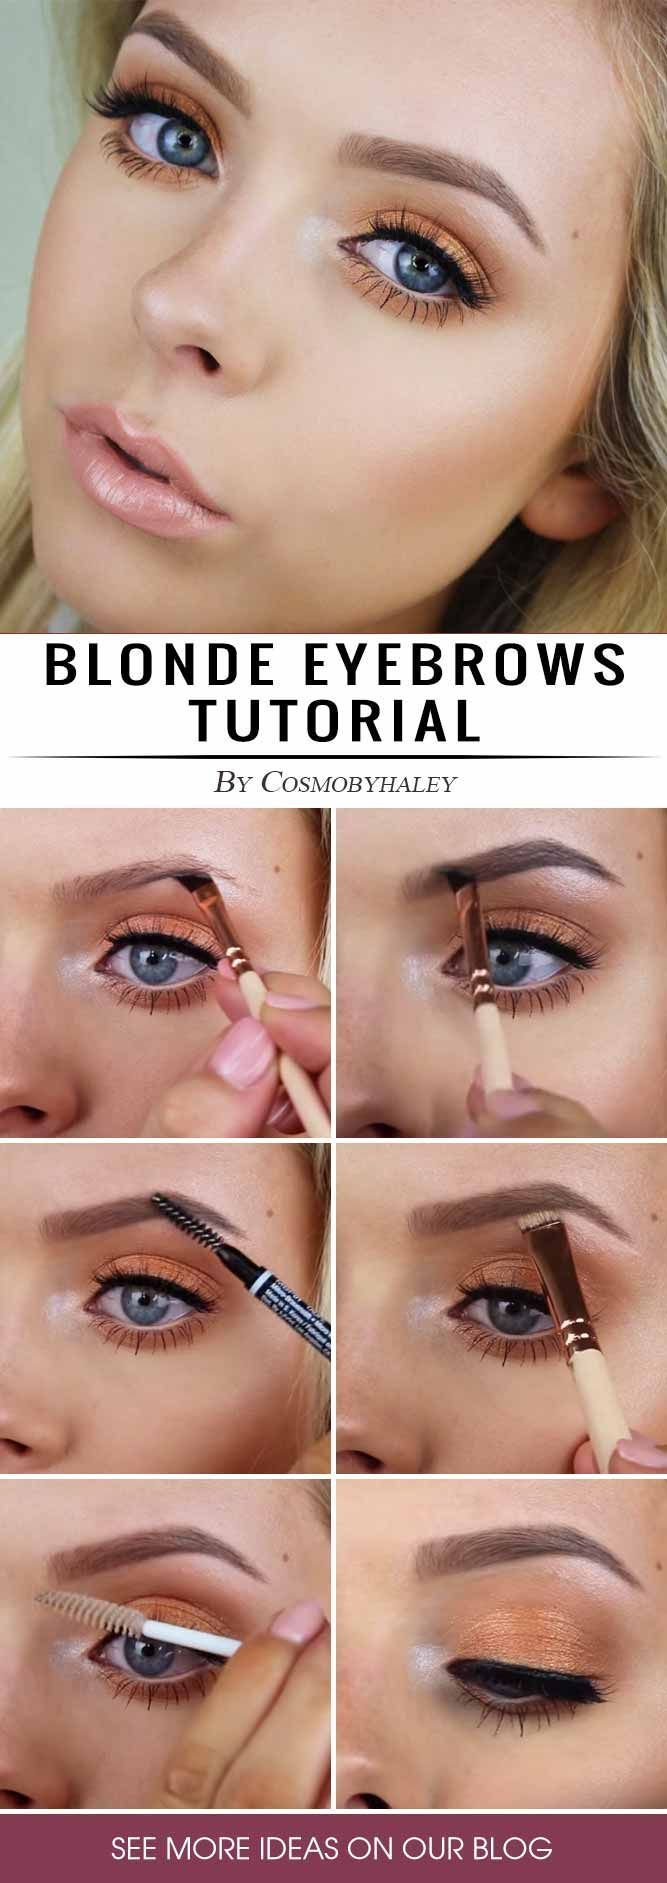 Blonde Eyebrows Tutorial How To Get Fuller Natural Looking Eyebrows Blonde Eyebrows Eyebrow Tutorial How To Do Eyebrows